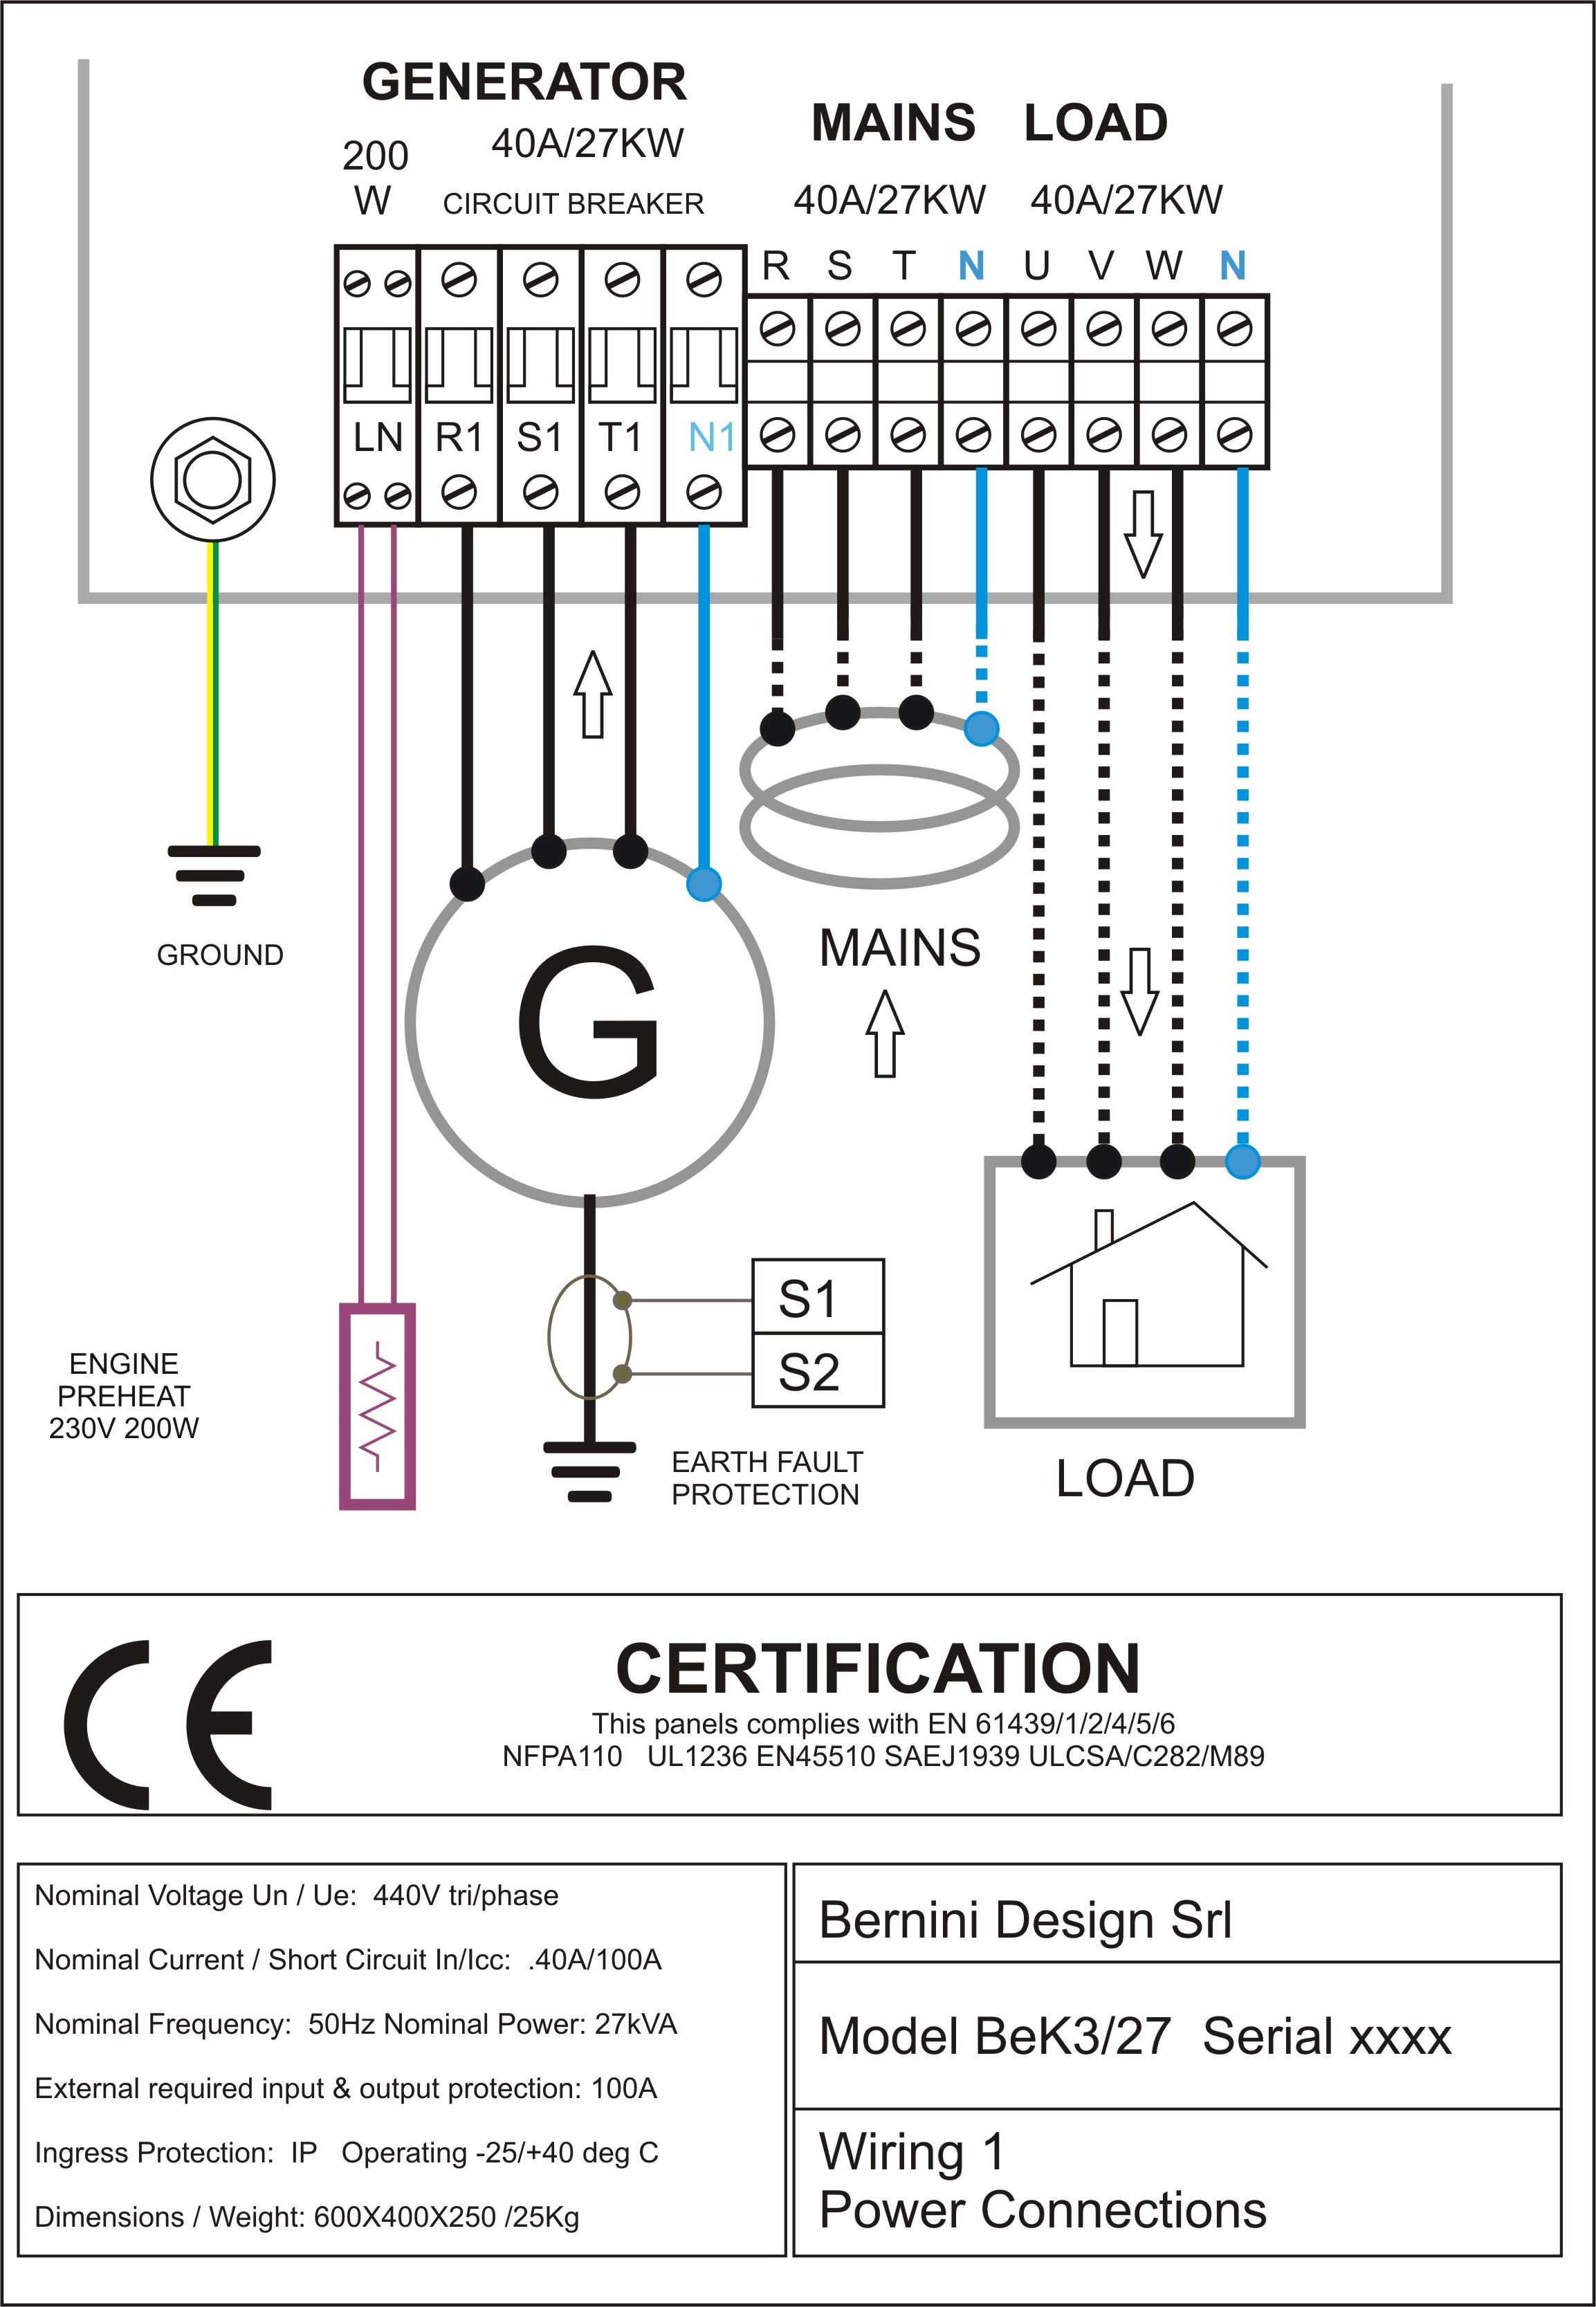 Diesel Generator Control Panel Wiring Diagram AC Connections1 automatic transfer switch wiring diagram free efcaviation com generac 100 amp automatic transfer switch wiring diagram at webbmarketing.co